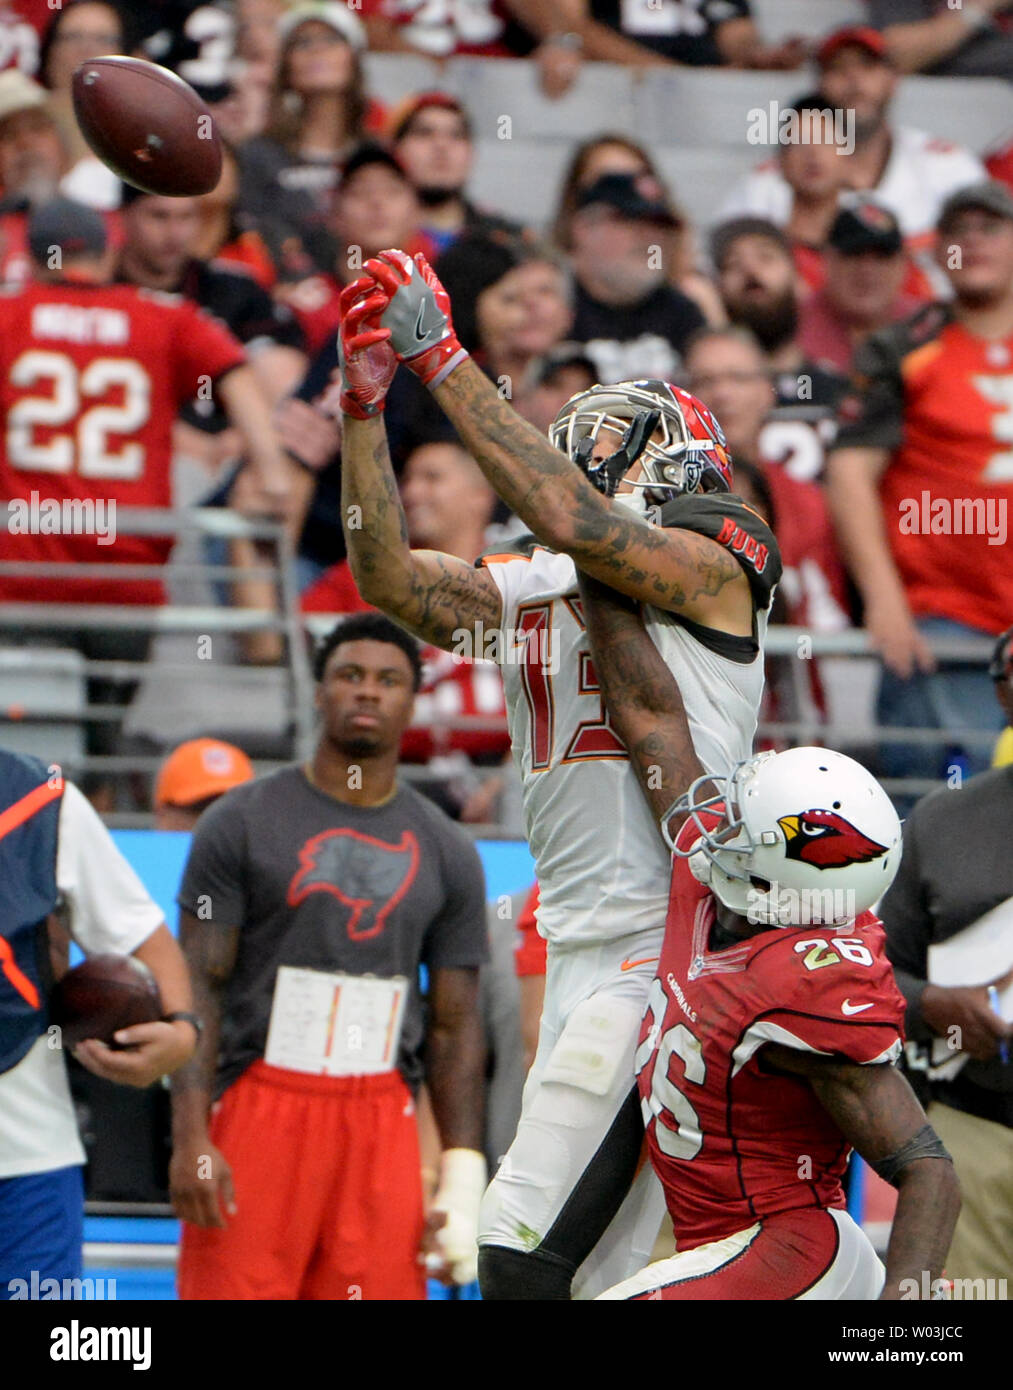 Tampa Bay Buccaneers' Mike Evans (L)  can't make the catch in the fourth quarter of the Buccaneers-Arizona Cardinals game at University of Phoenix Stadium in Glendale, Arizona, September 18, 2016. The Cardinals defeated the Buccaneers 40-7. Photo by Art Foxall/UPI Stock Photo